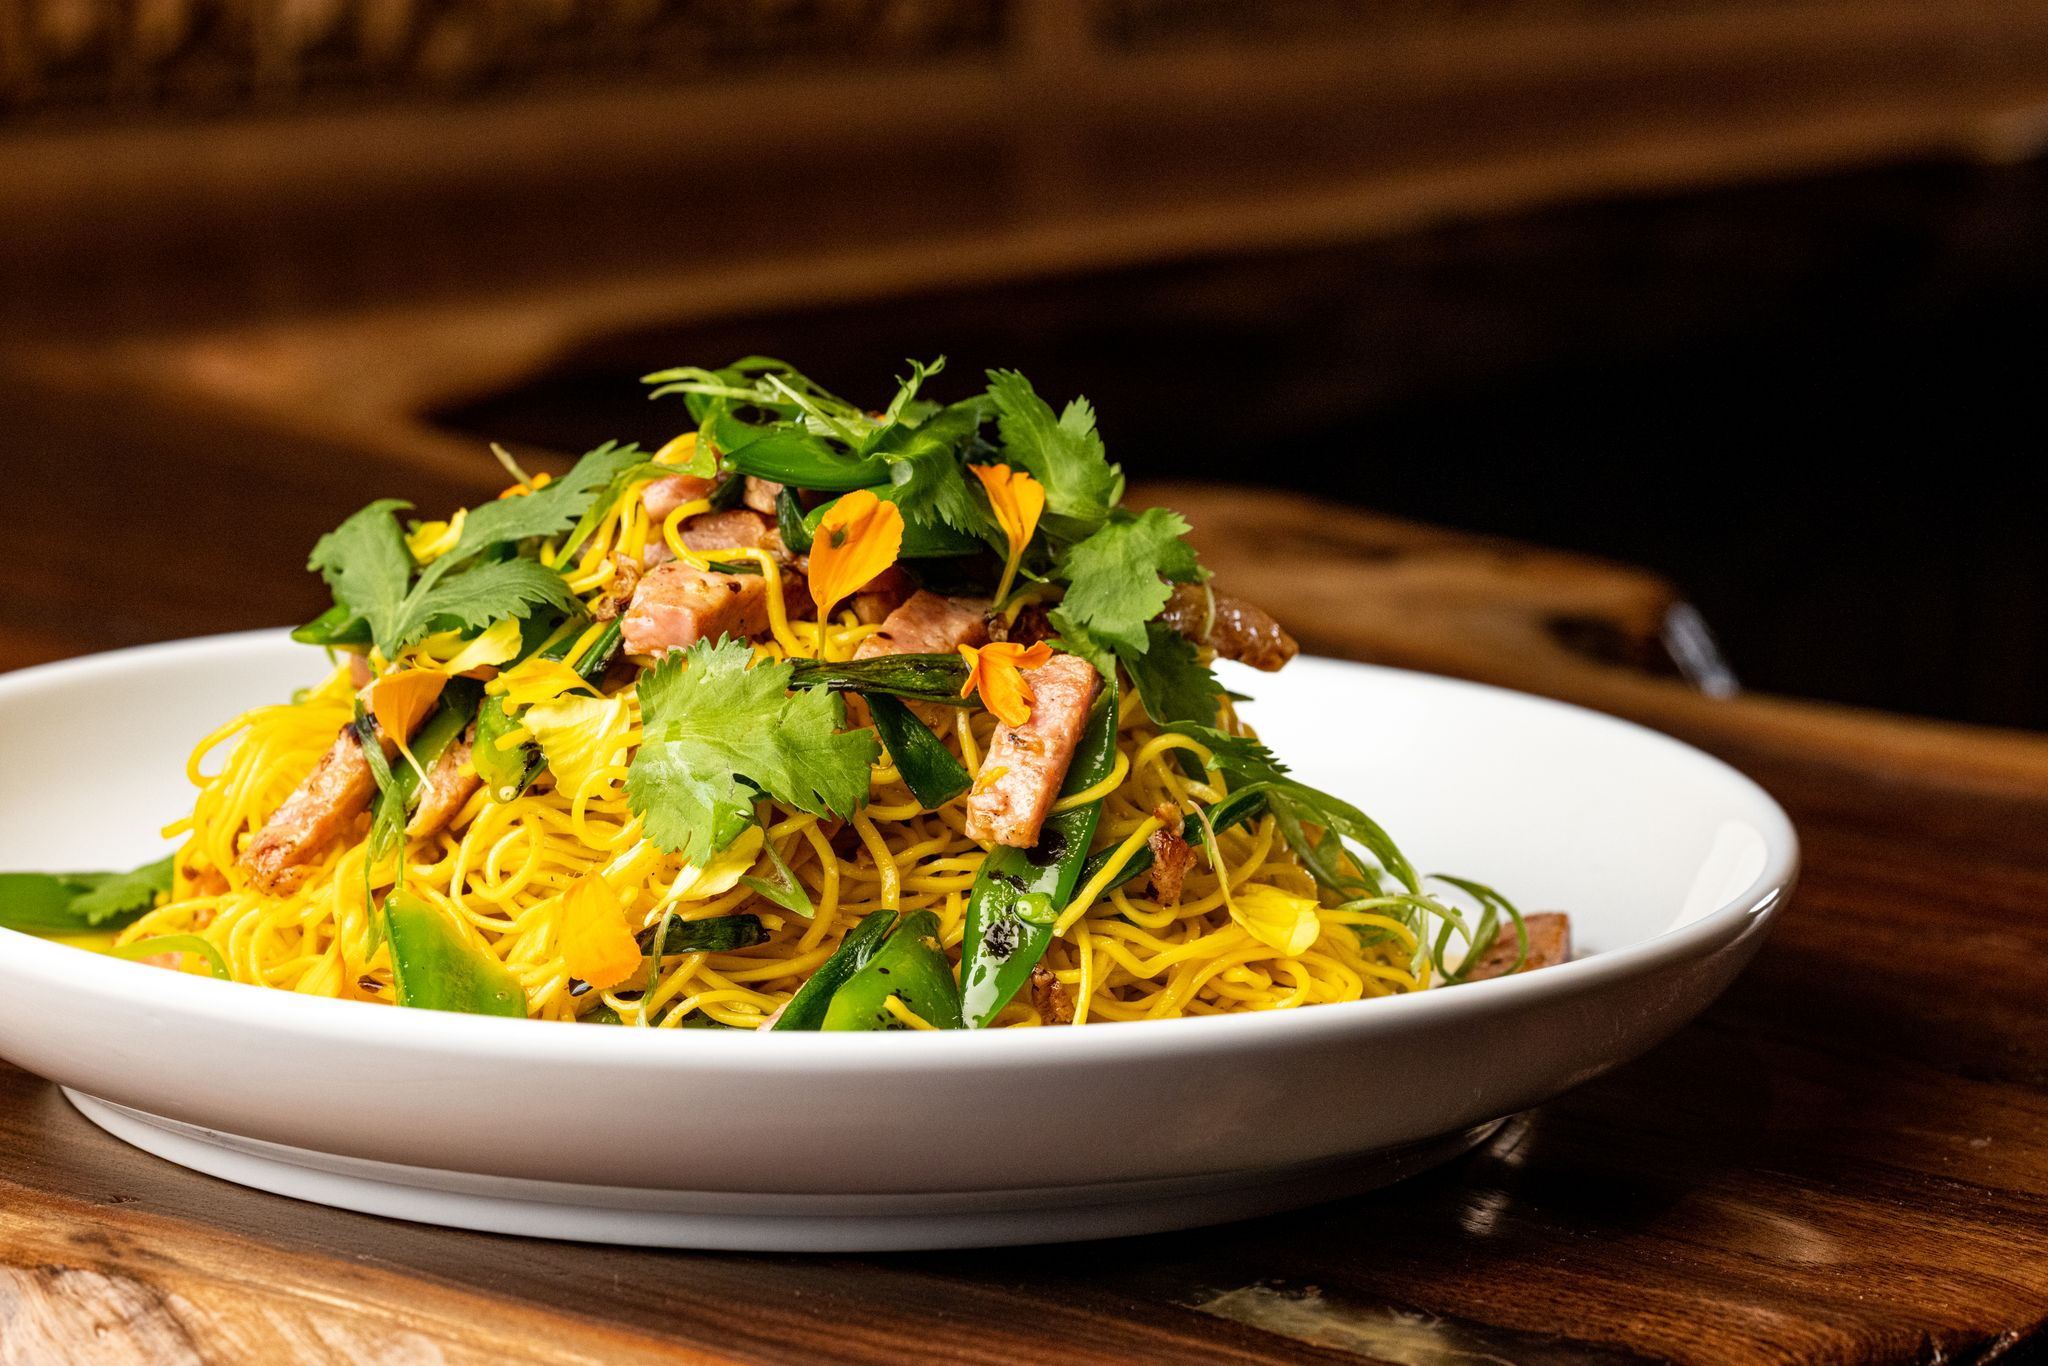 a plate of noodles topped with shredded ham and cilantro